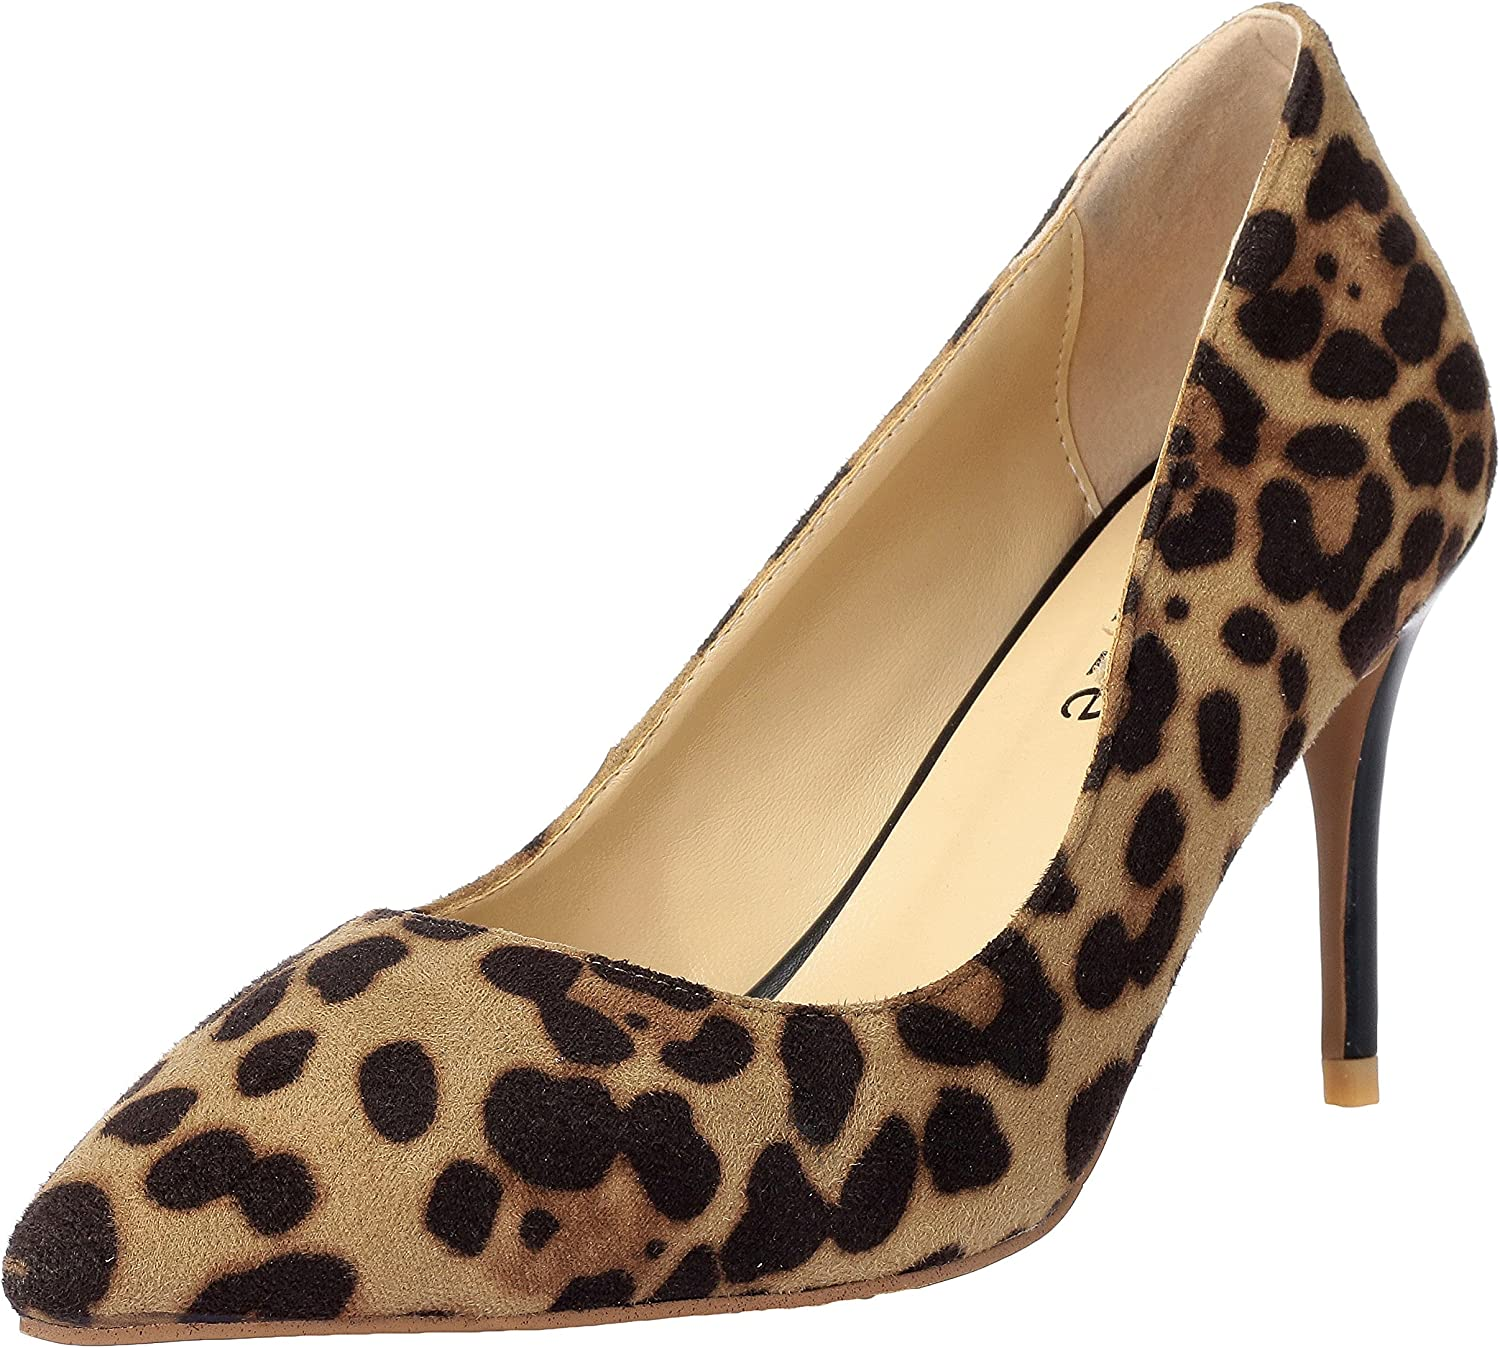 MAYPIE Women's Sexy Pointed Toe High Heel Stiletto Dress Pumps shoes 3 Inch Heel